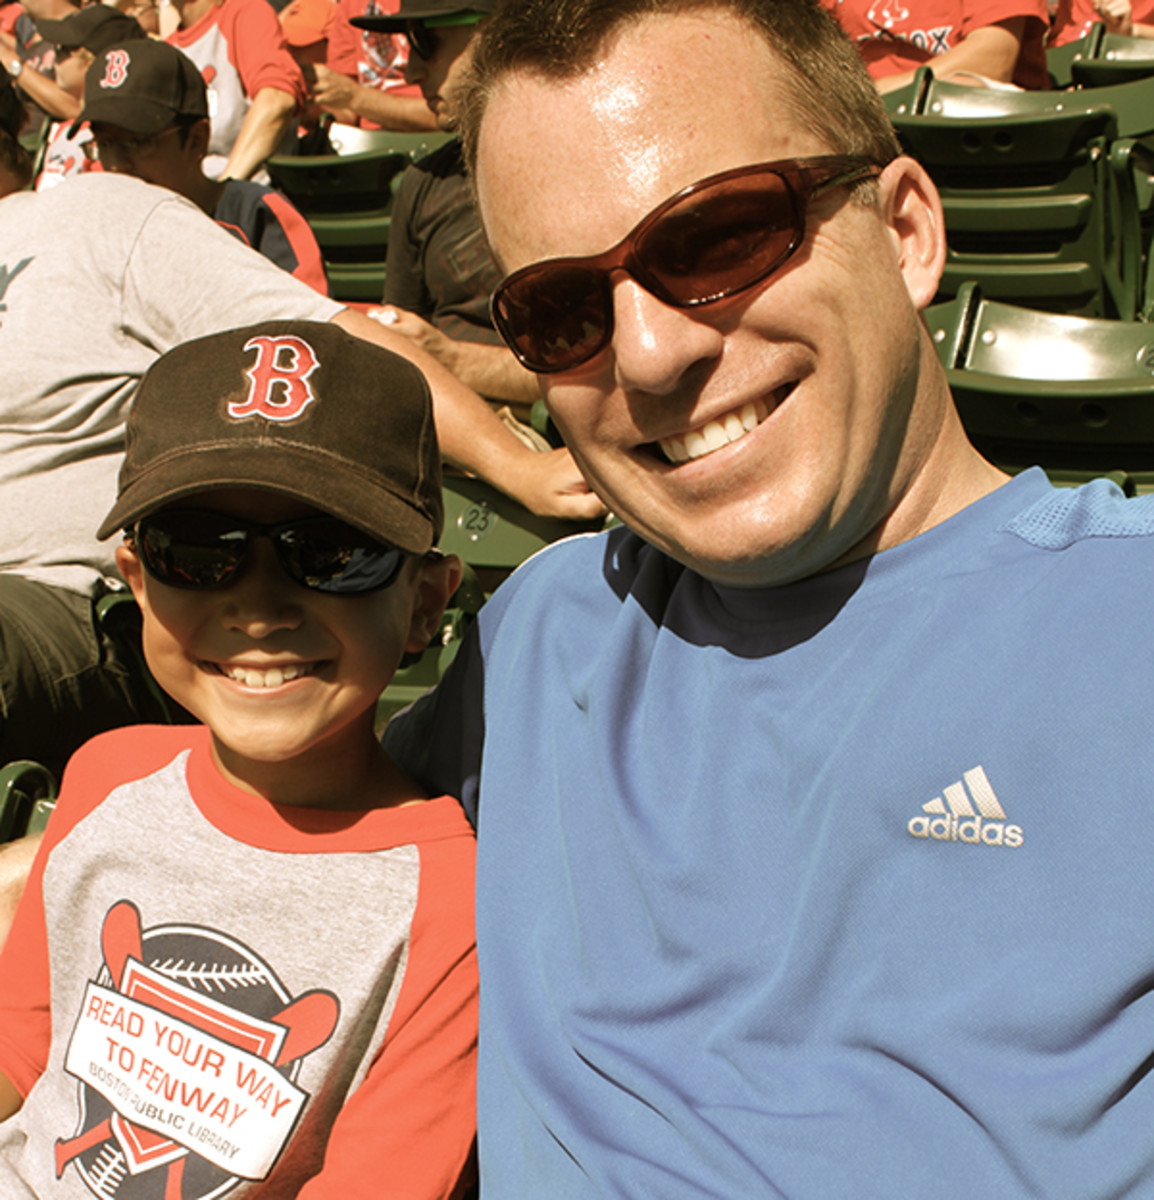 kid reporter max surprenant father's day